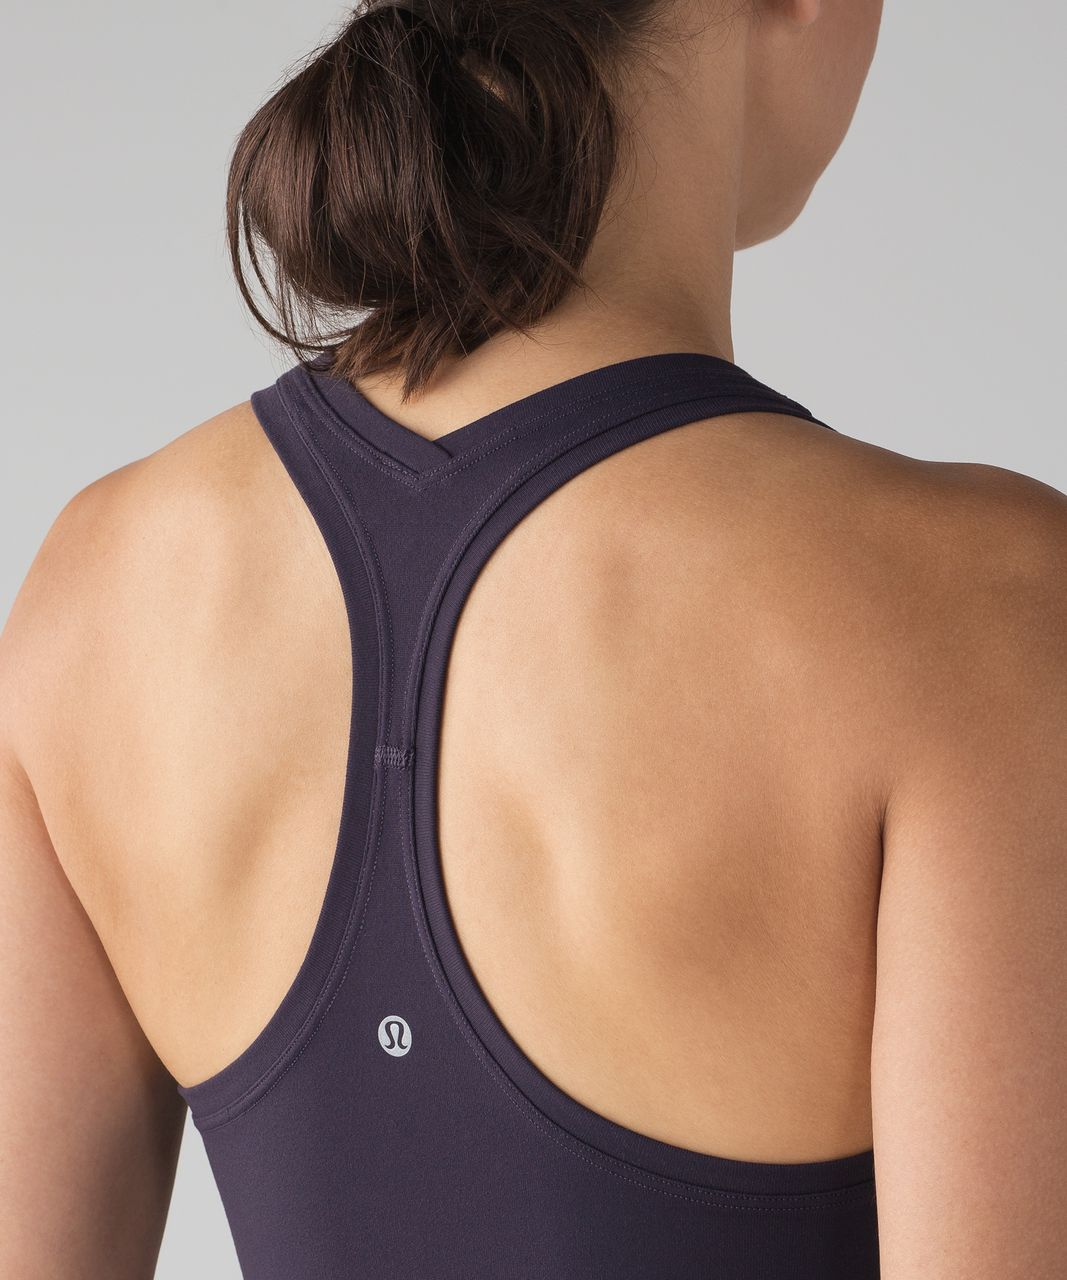 Lululemon Cool Racerback II - Black Grape